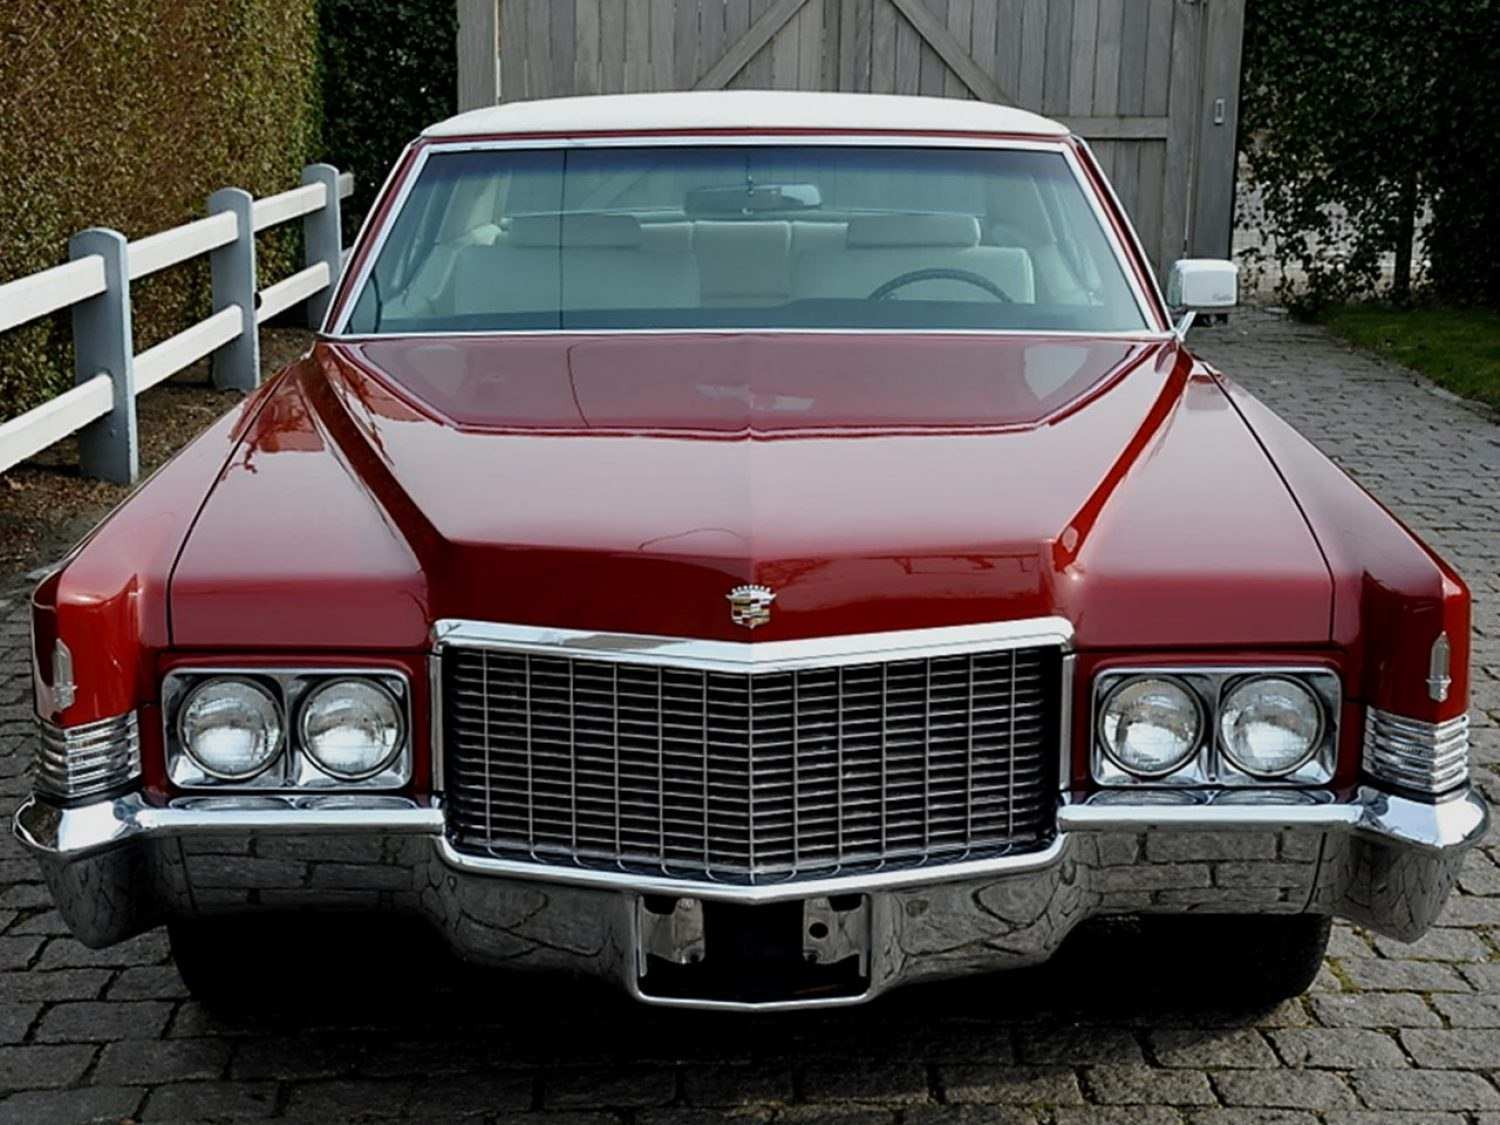 83 The Best 2020 Cadillac Fleetwood Series 75 Research New